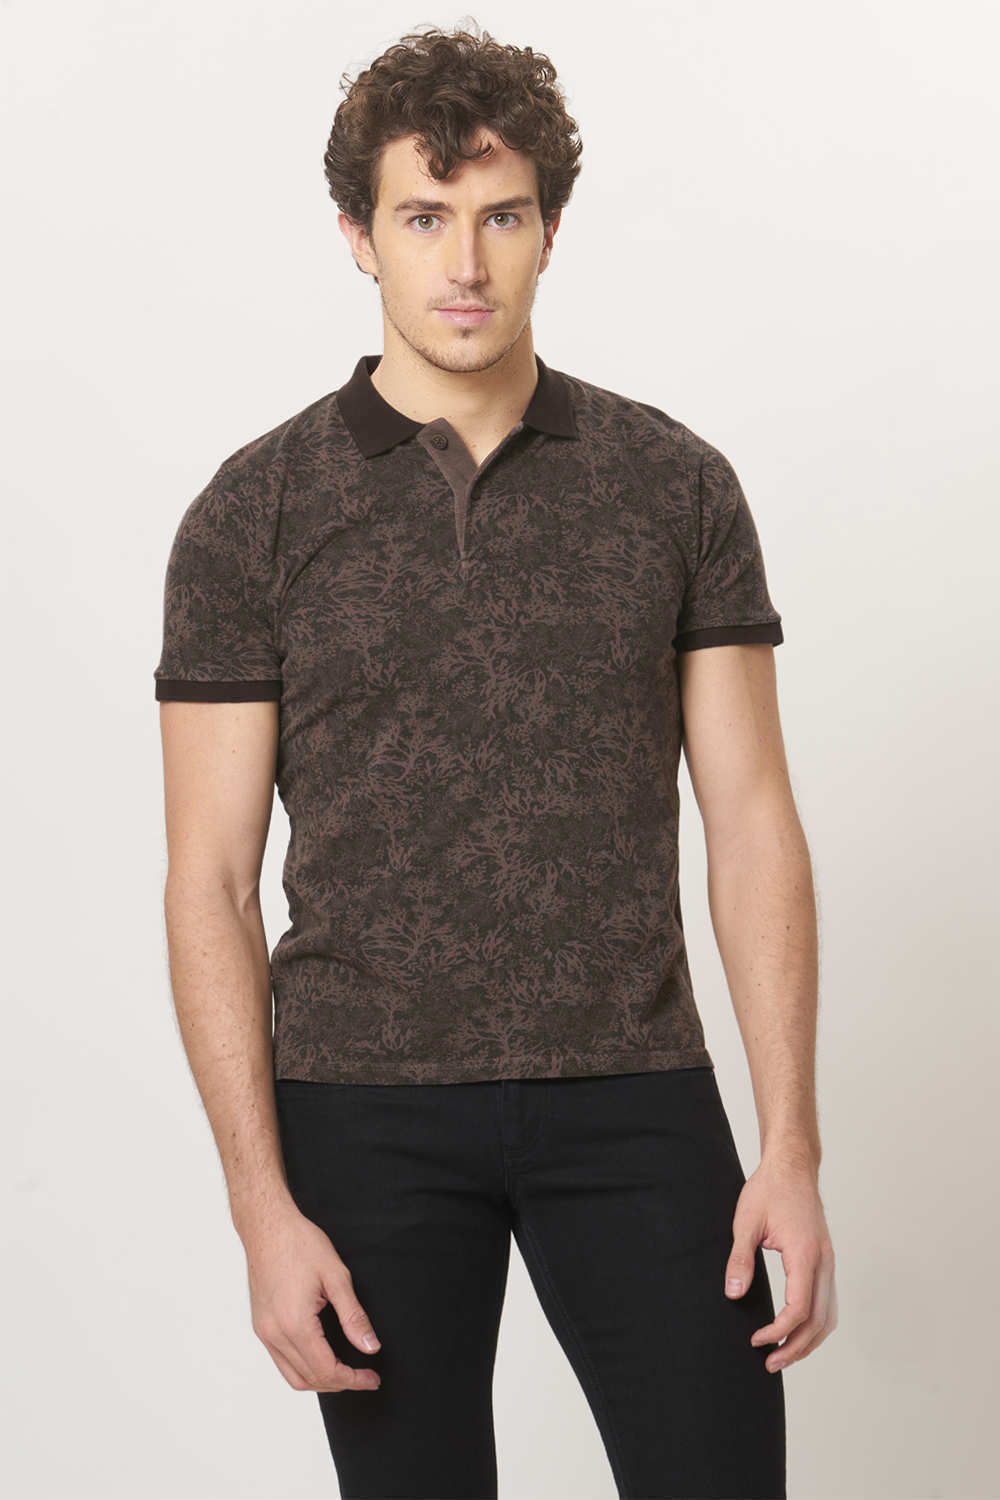 Basics | Basics Muscle Fit Mud Brown Rugby Polo T.Shirt-17BTS36385